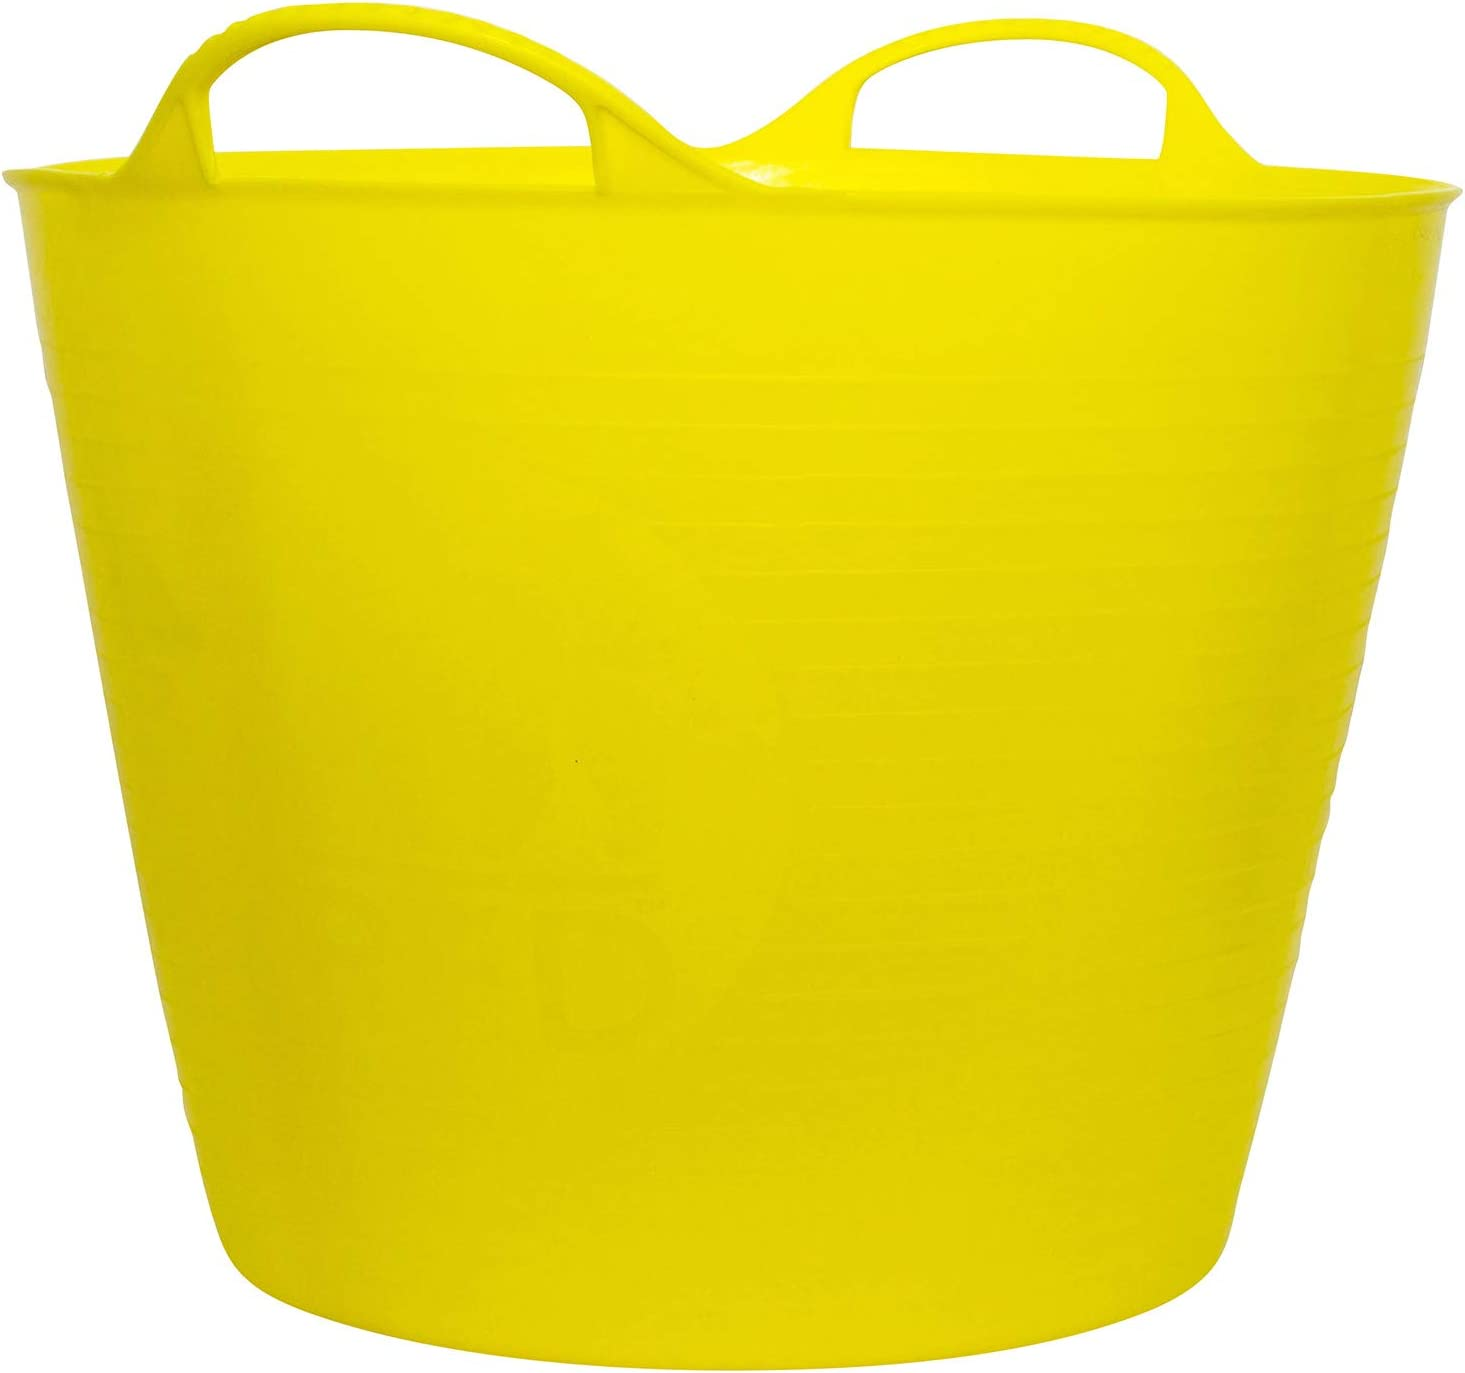 Red Gorilla Flexible Medium Tub, Yellow